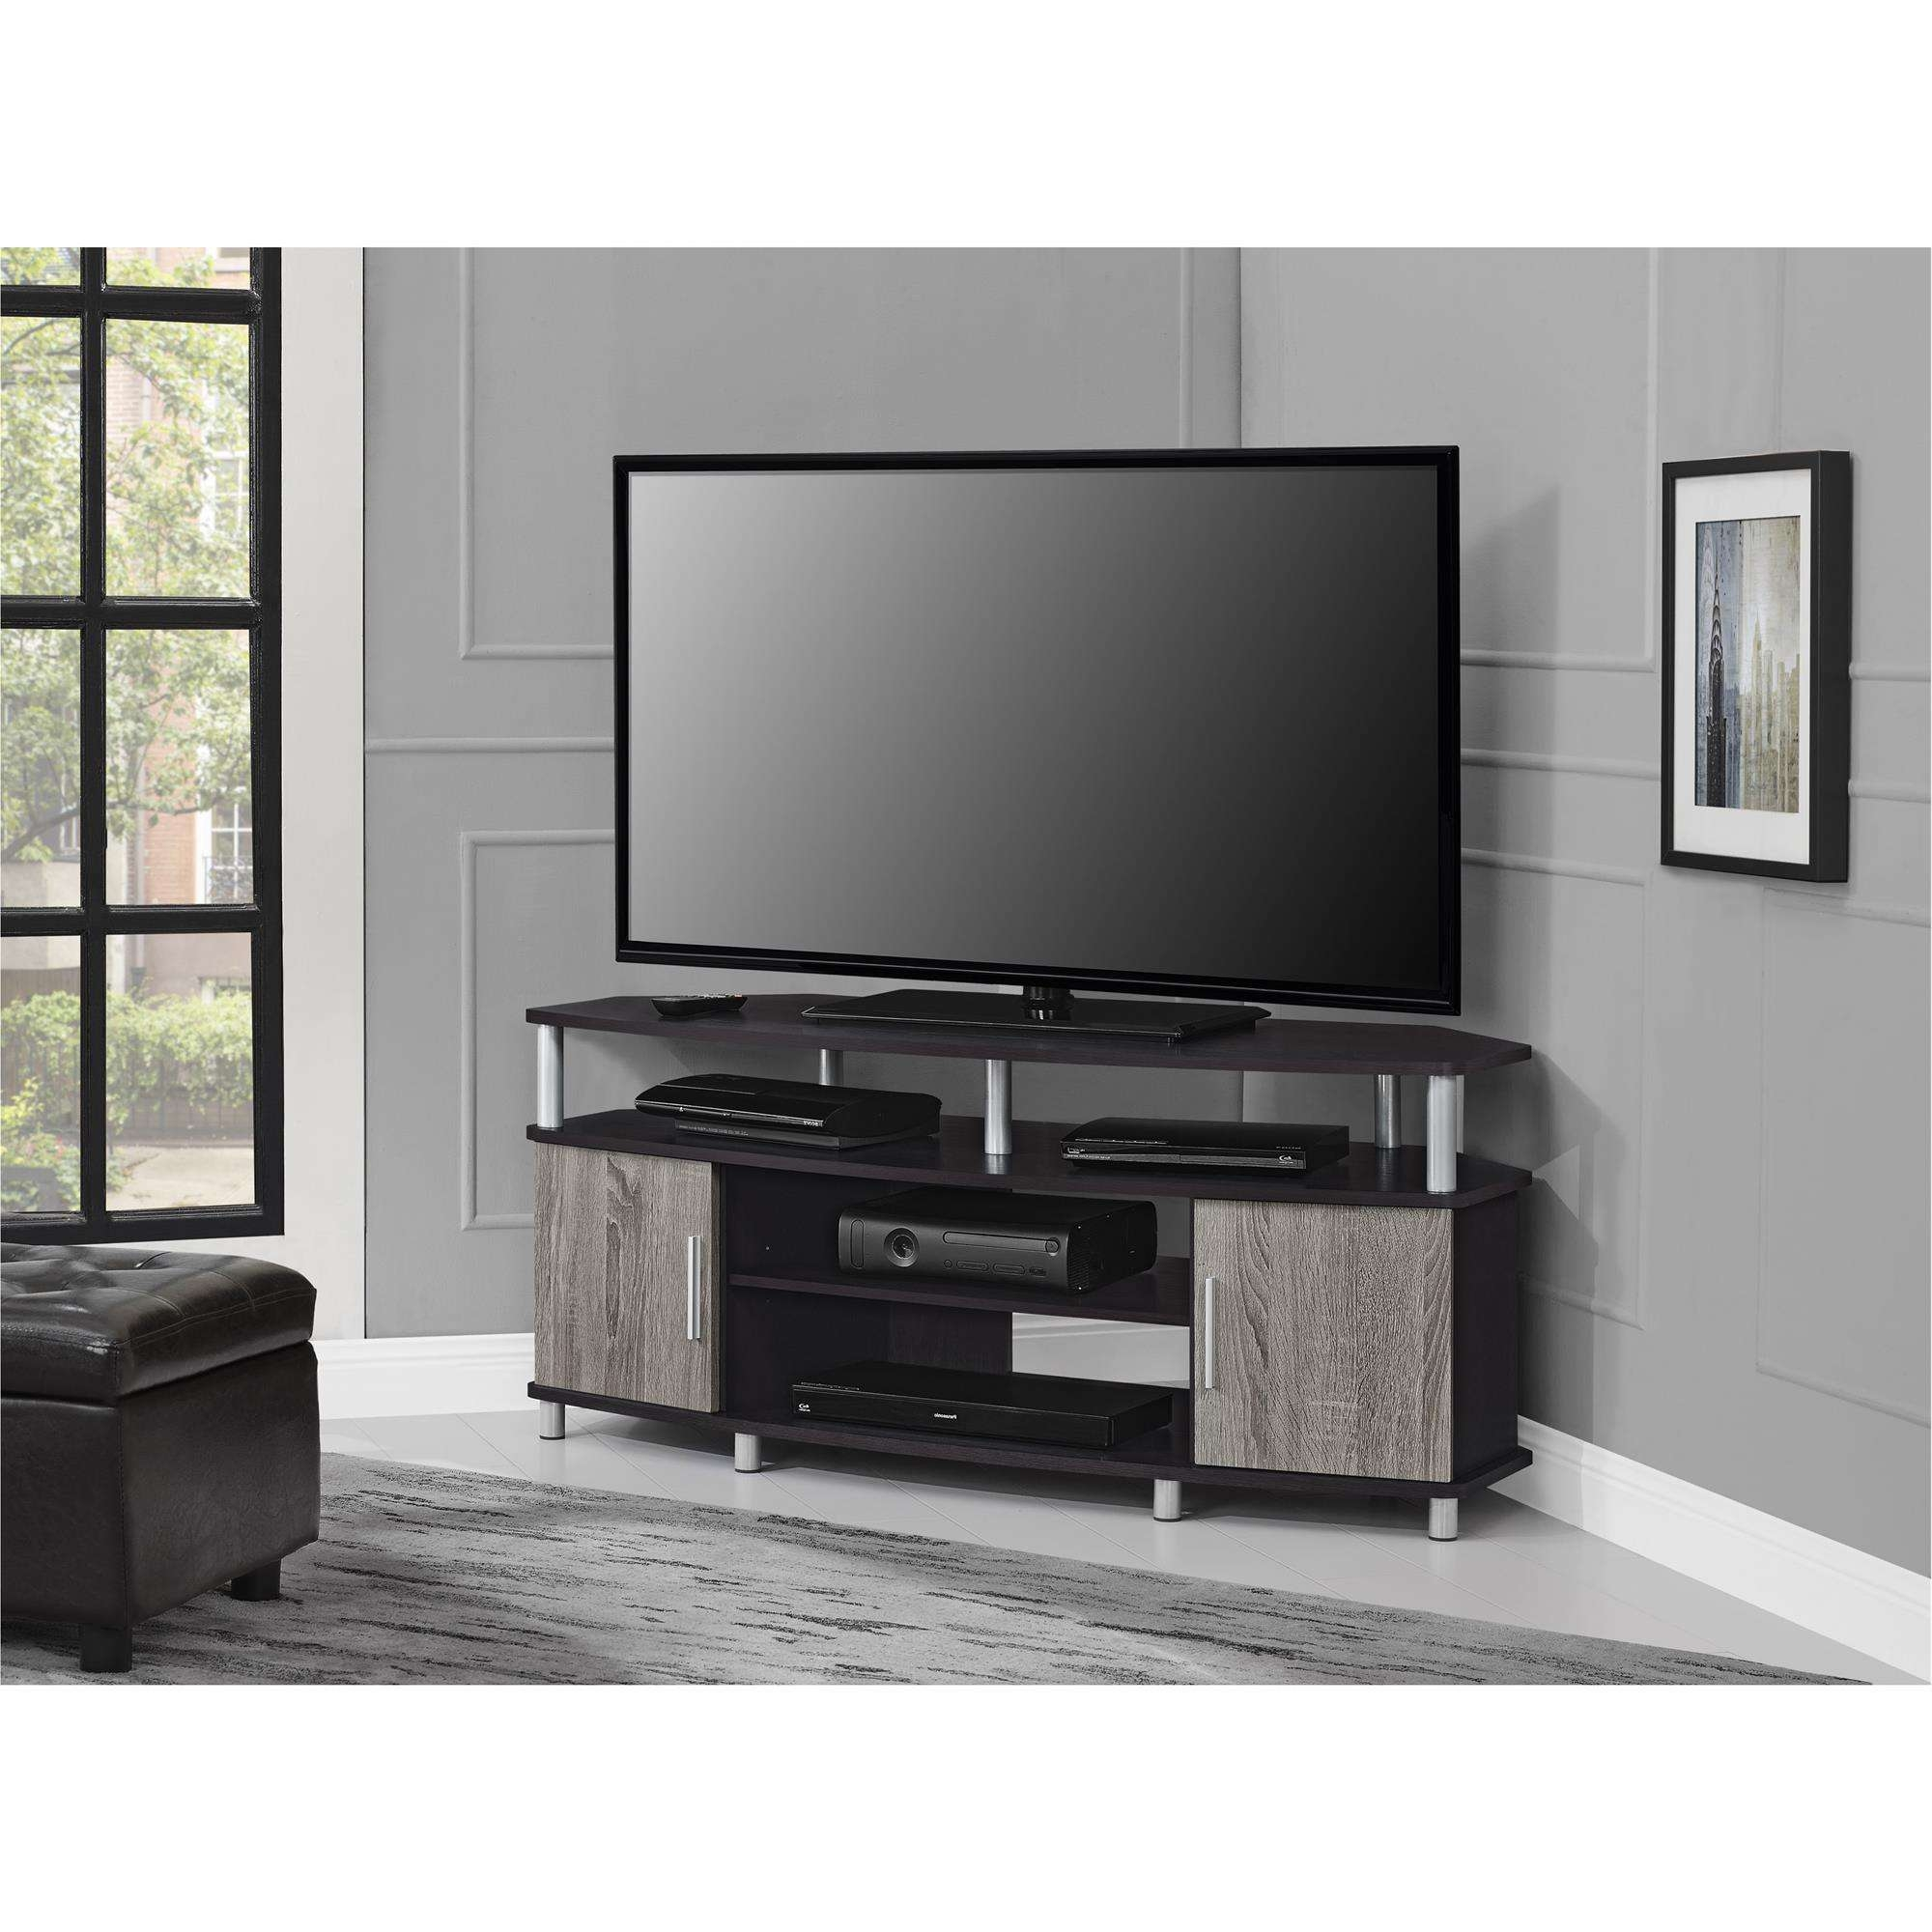 "Ameriwood Home Carson Corner Tv Stand For Tvs Up To 50"" Wide Intended For 50 Inch Corner Tv Cabinets (View 2 of 20)"